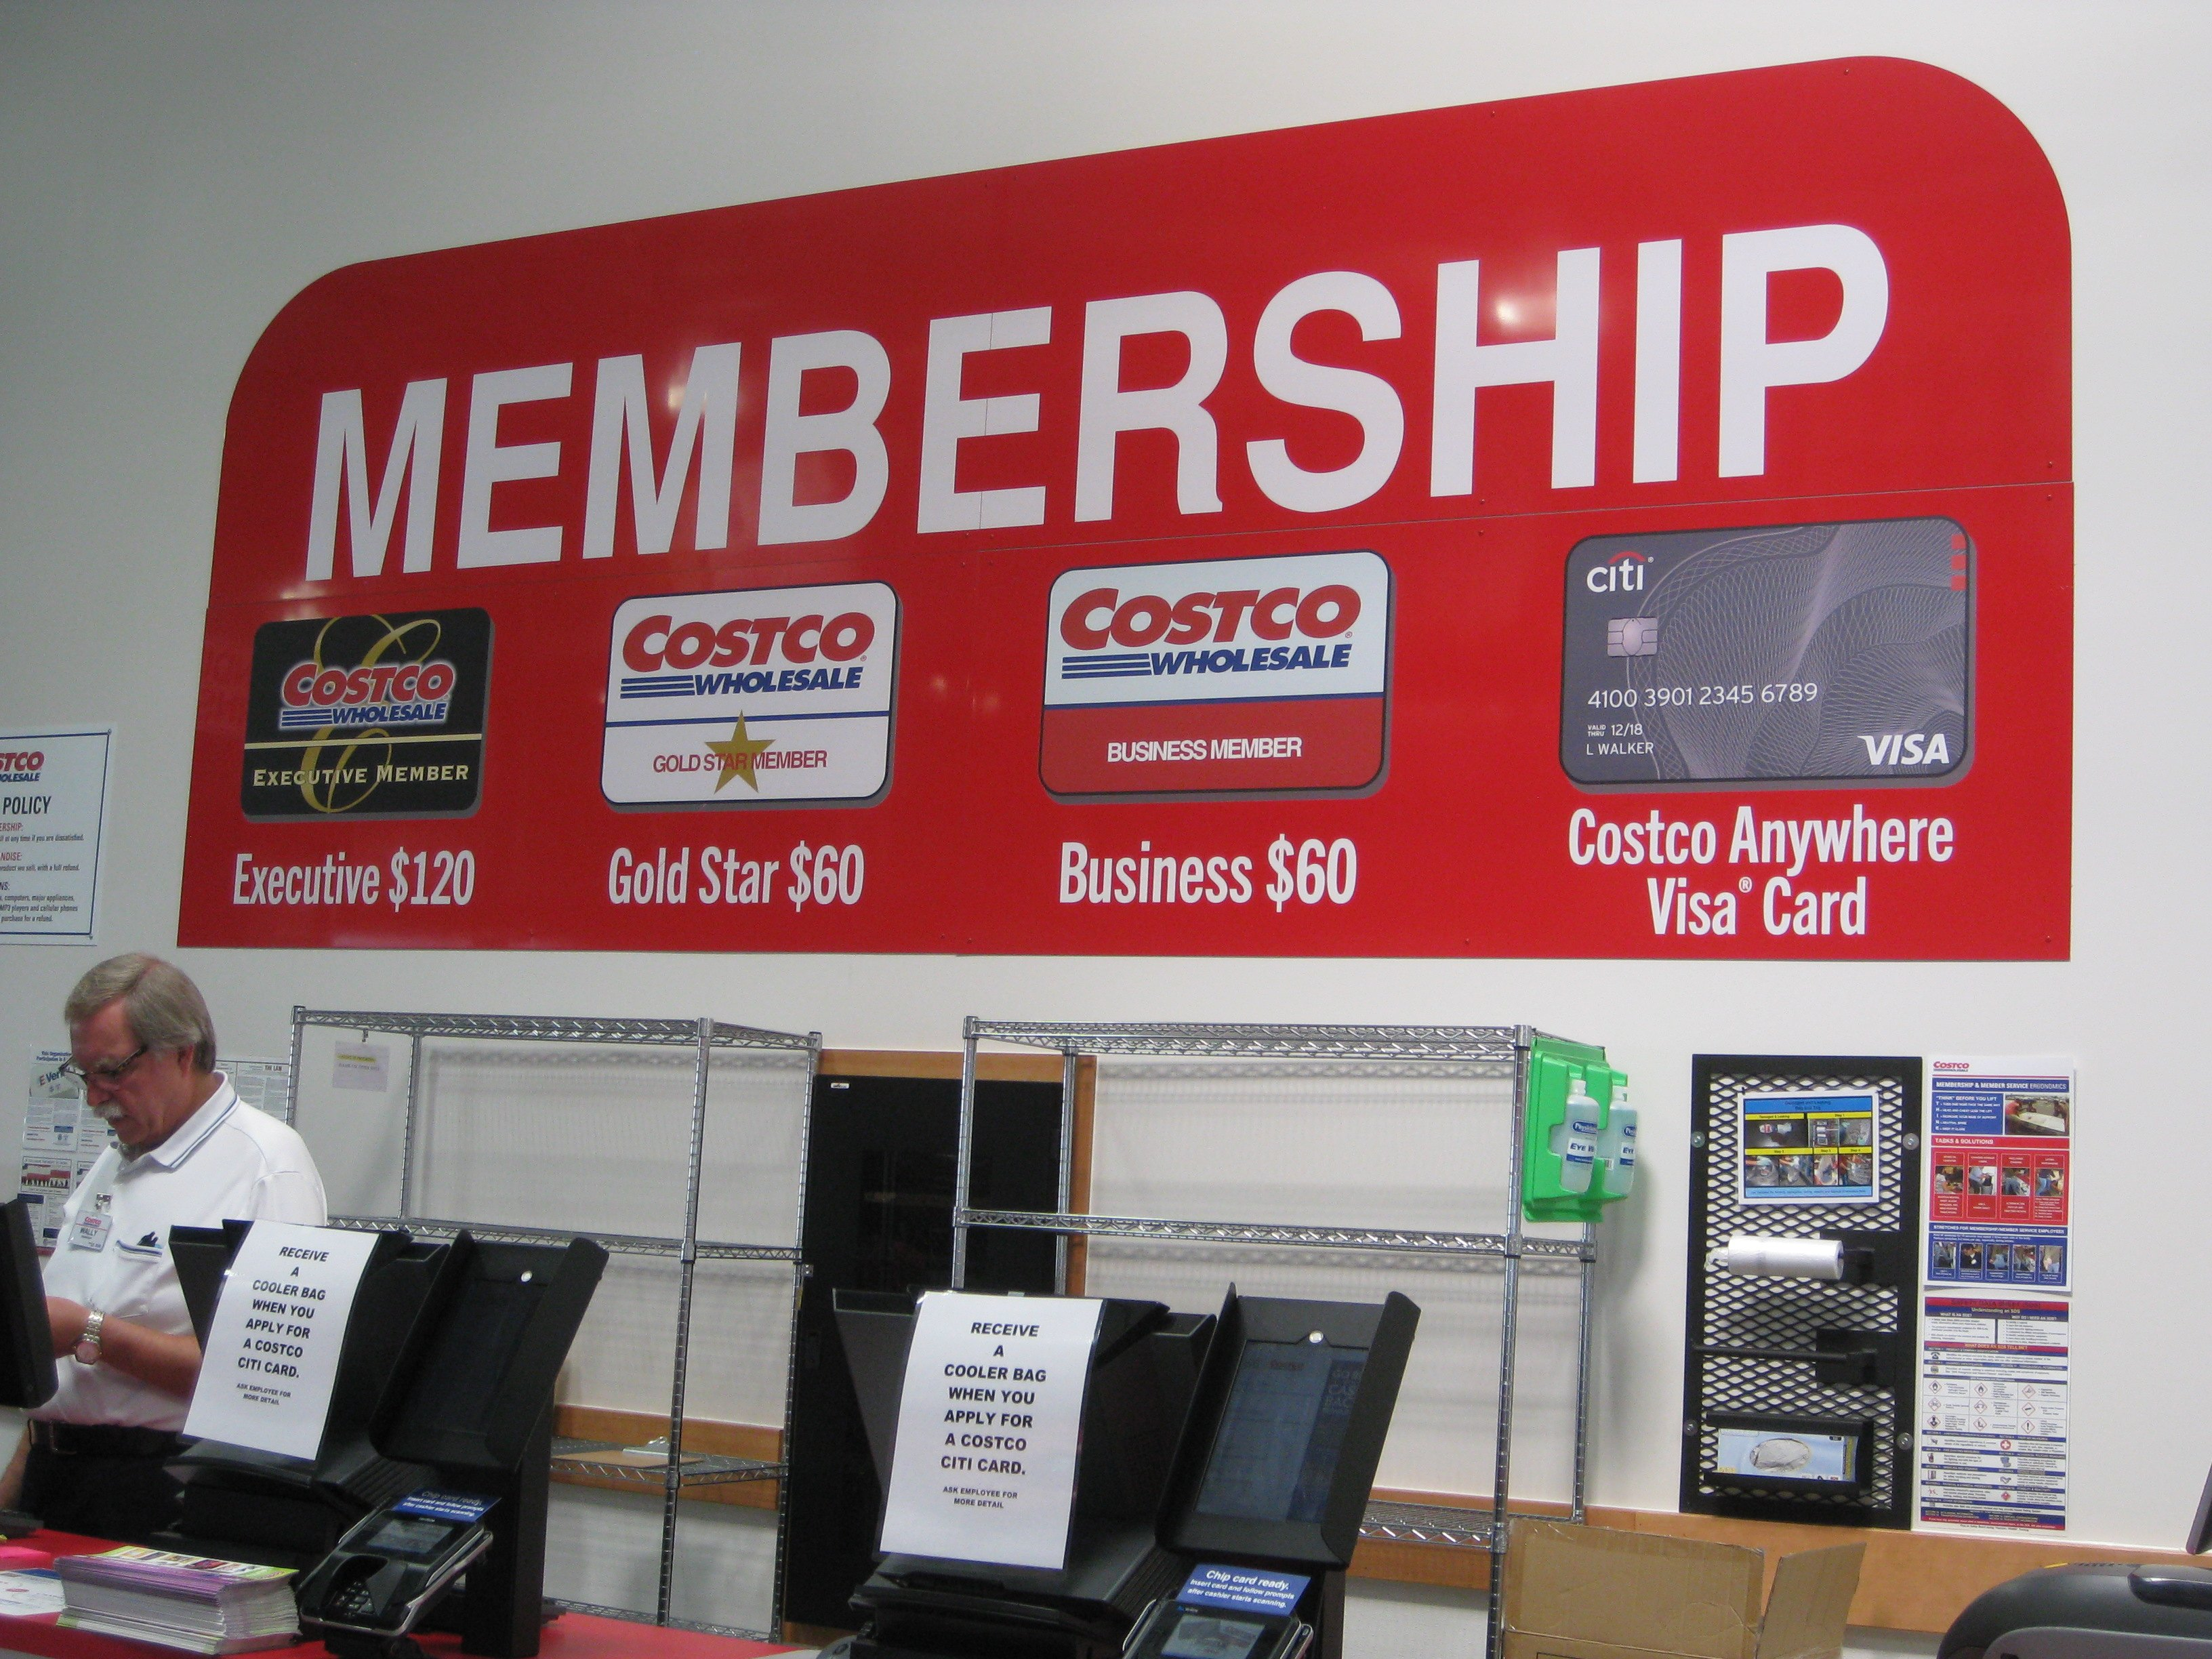 Costco membership desk